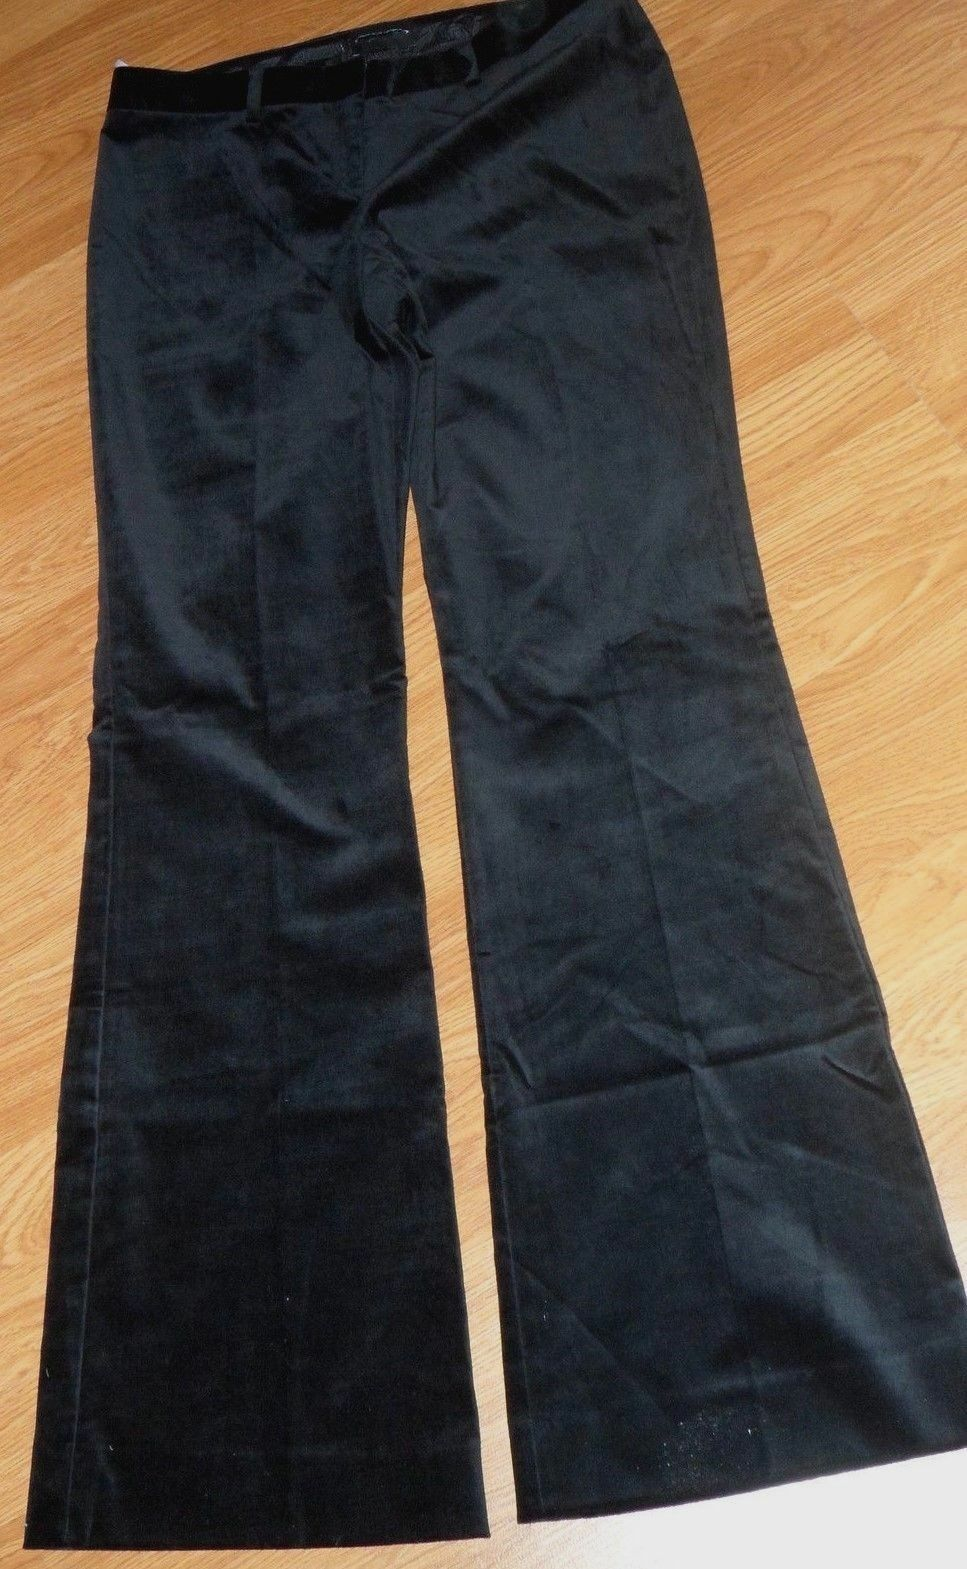 Primary image for *DREW FIT WOMEN'S PANTS SIZE 4 - 6 BLACK VELOUR STRETCH NWT